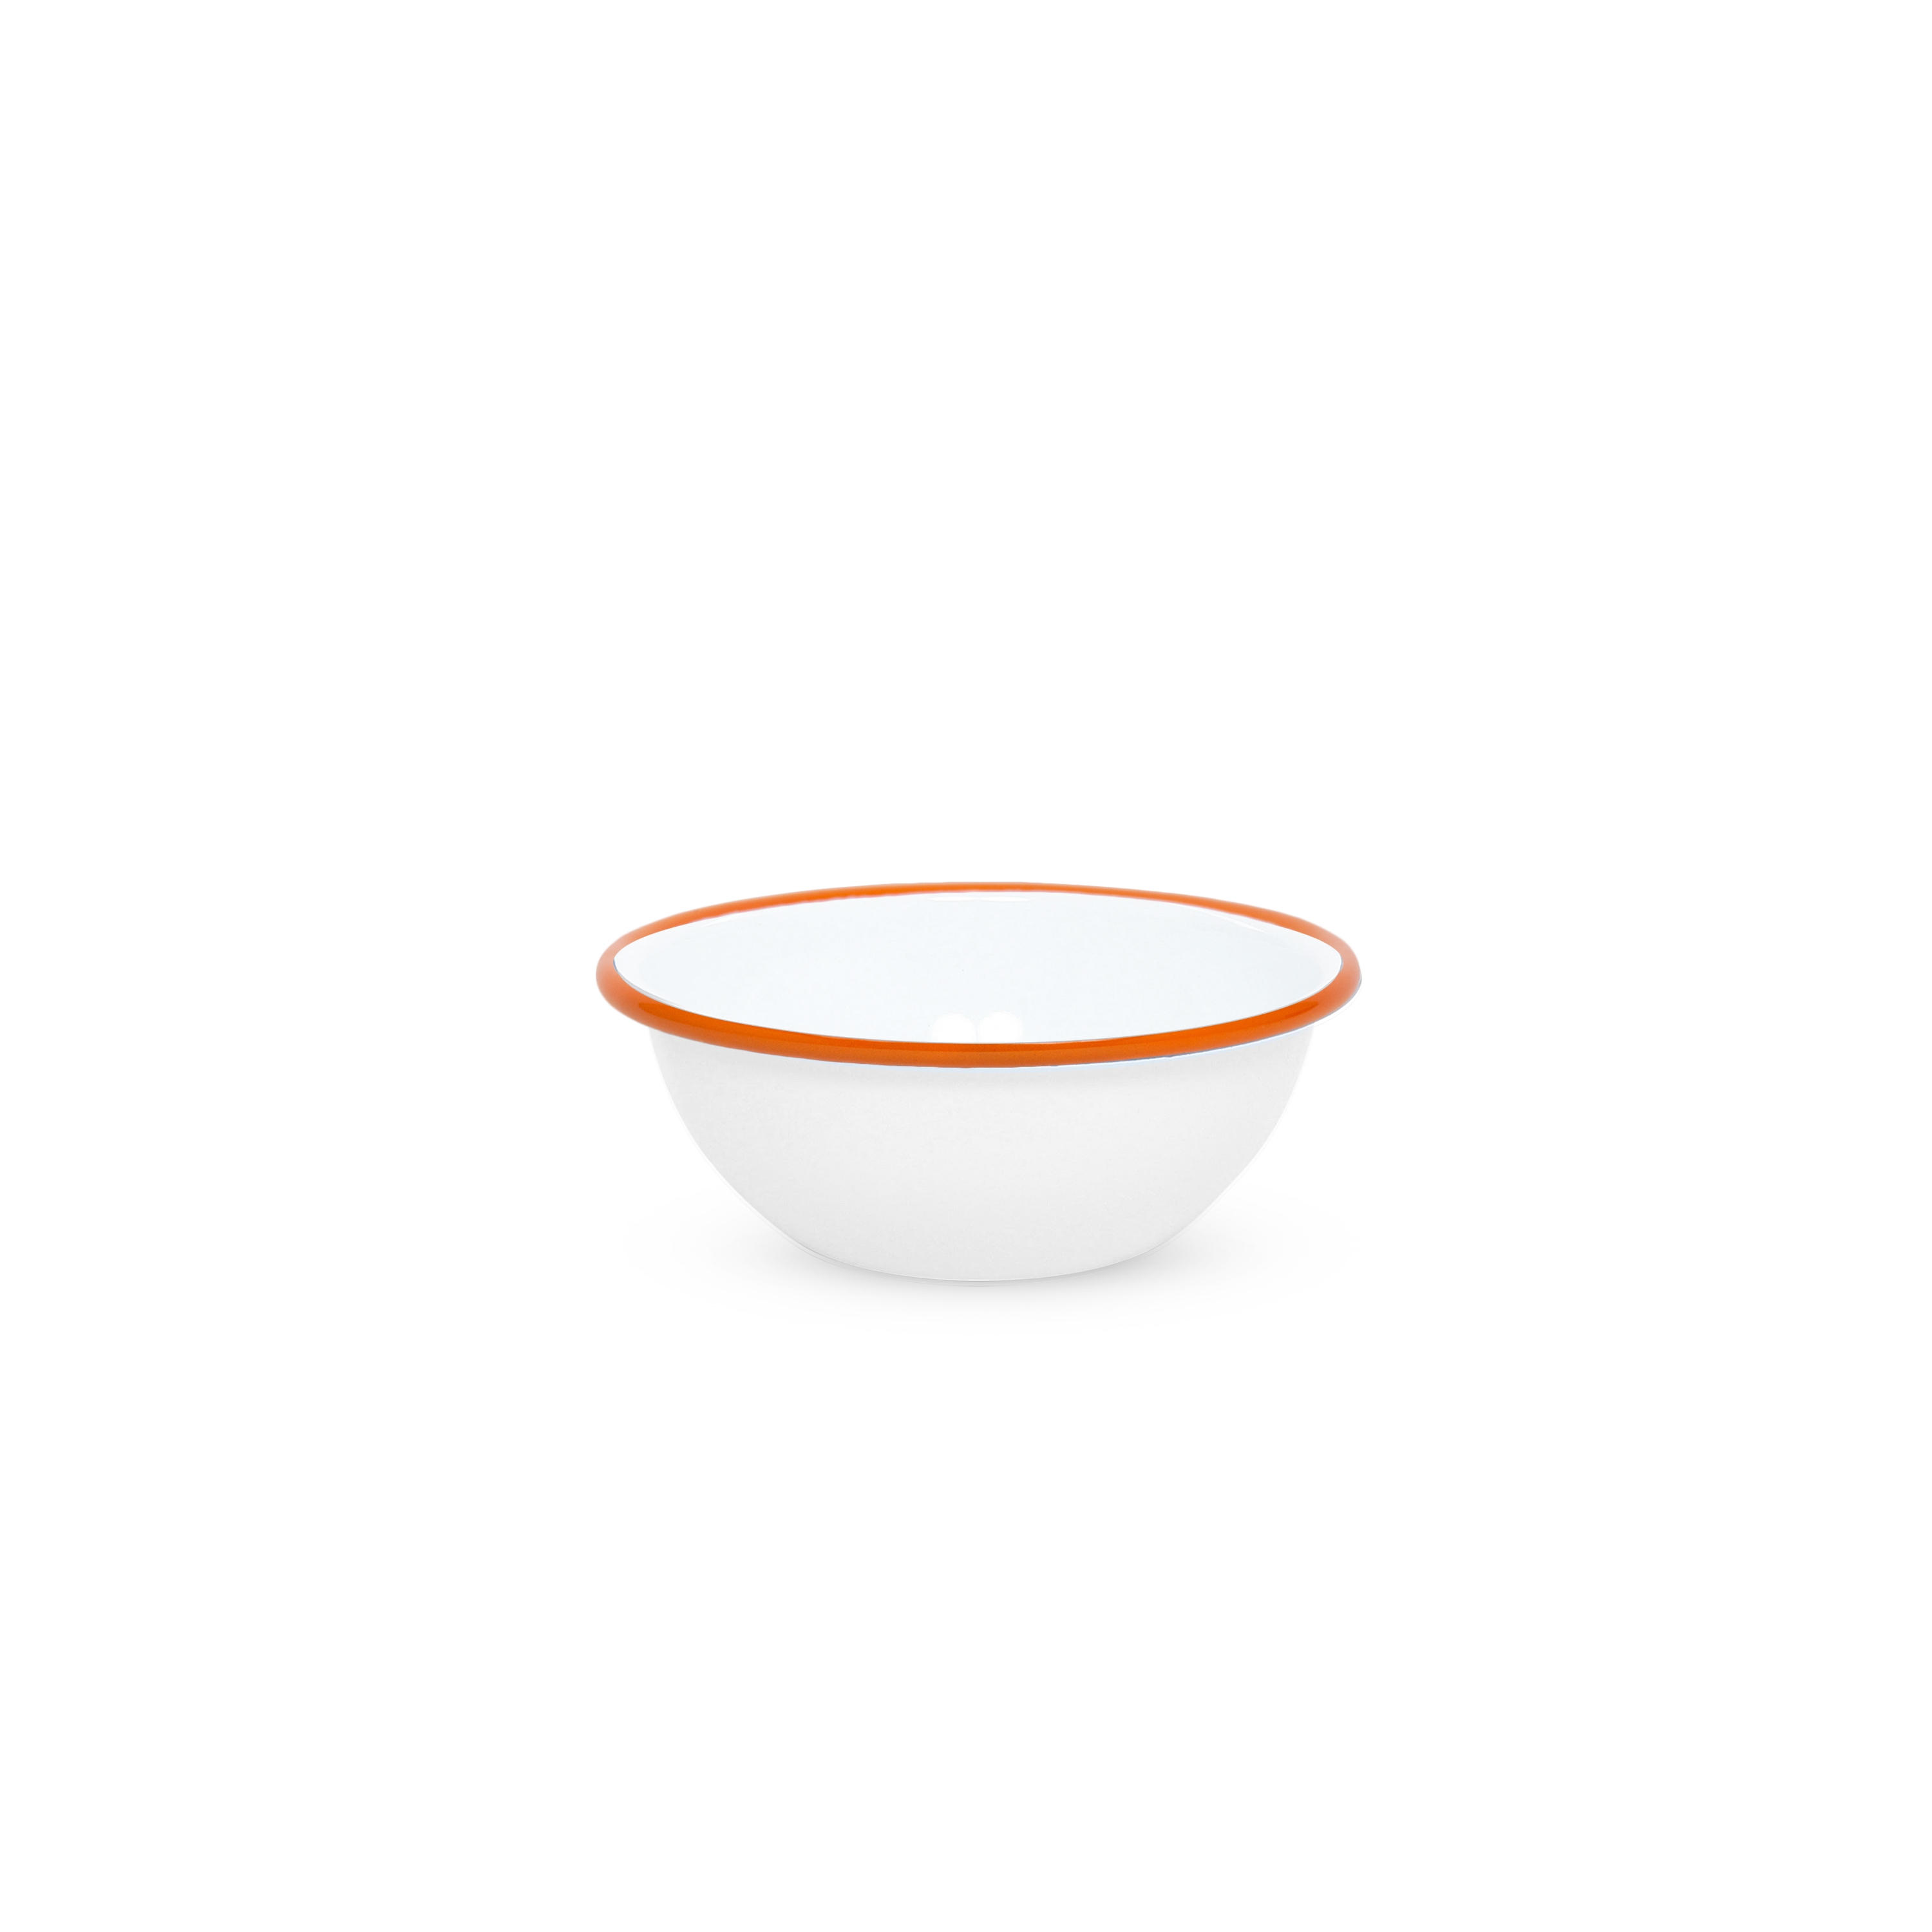 "Эмалированная миска белая с черной каймой 0,6л Crow Canyon Home CEREAL BOWL 5,5""(14см)#V17BLA"